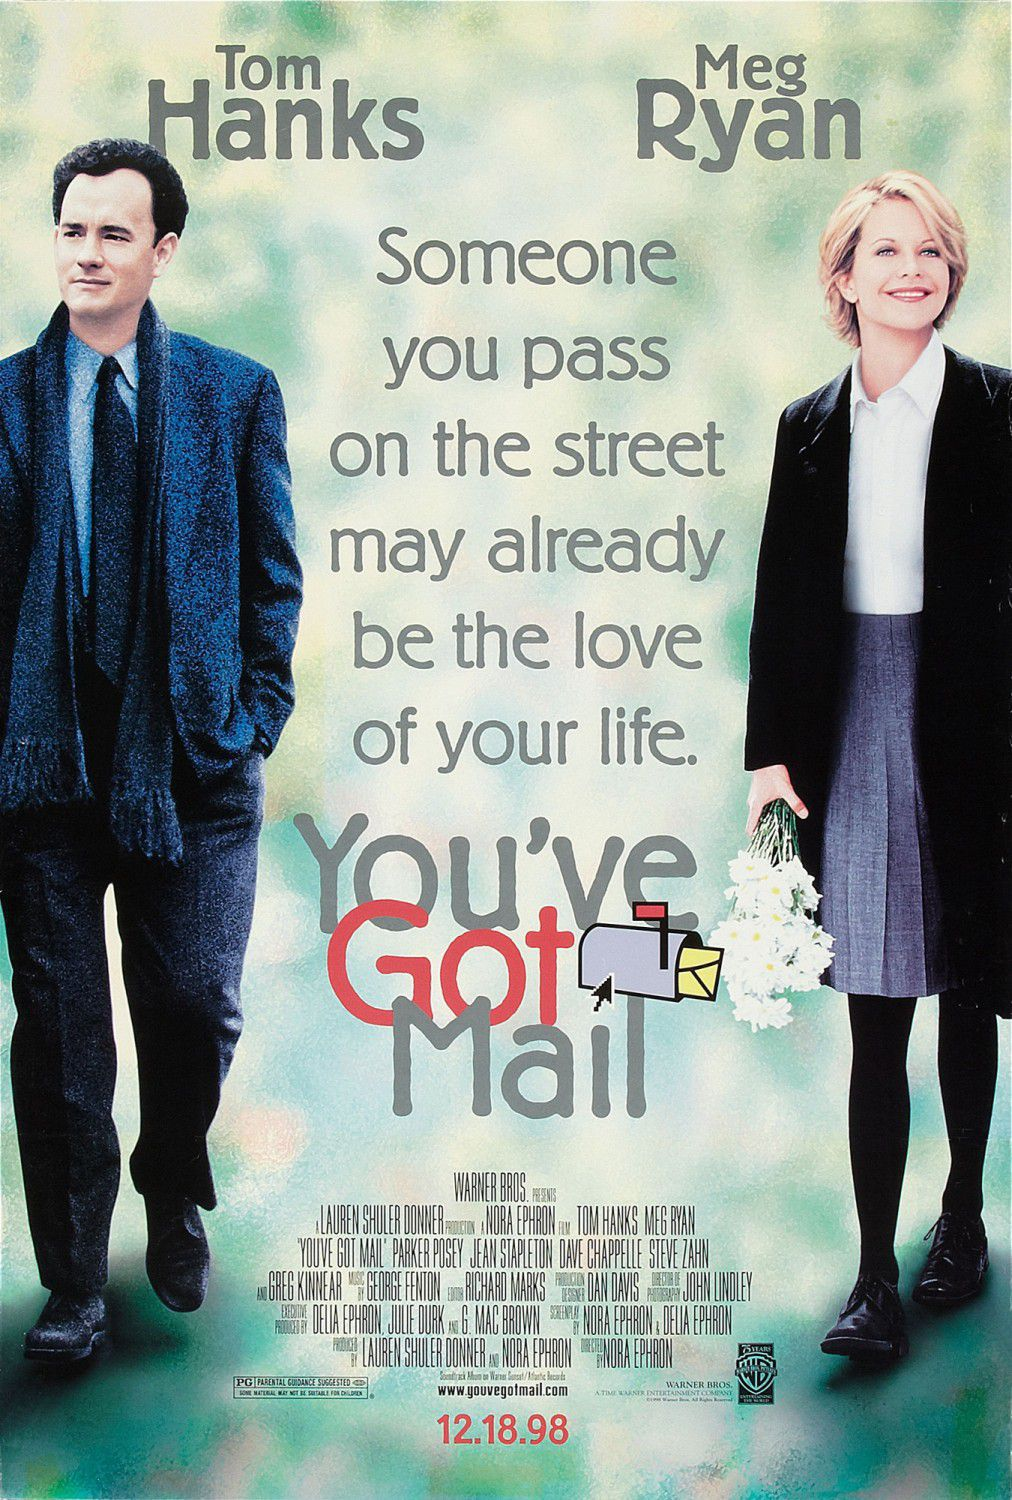 C'è posta per te - You ve got Mail - Joe Fox (Tom Hanks) - Kathleen Kelly (Meg Ryan)